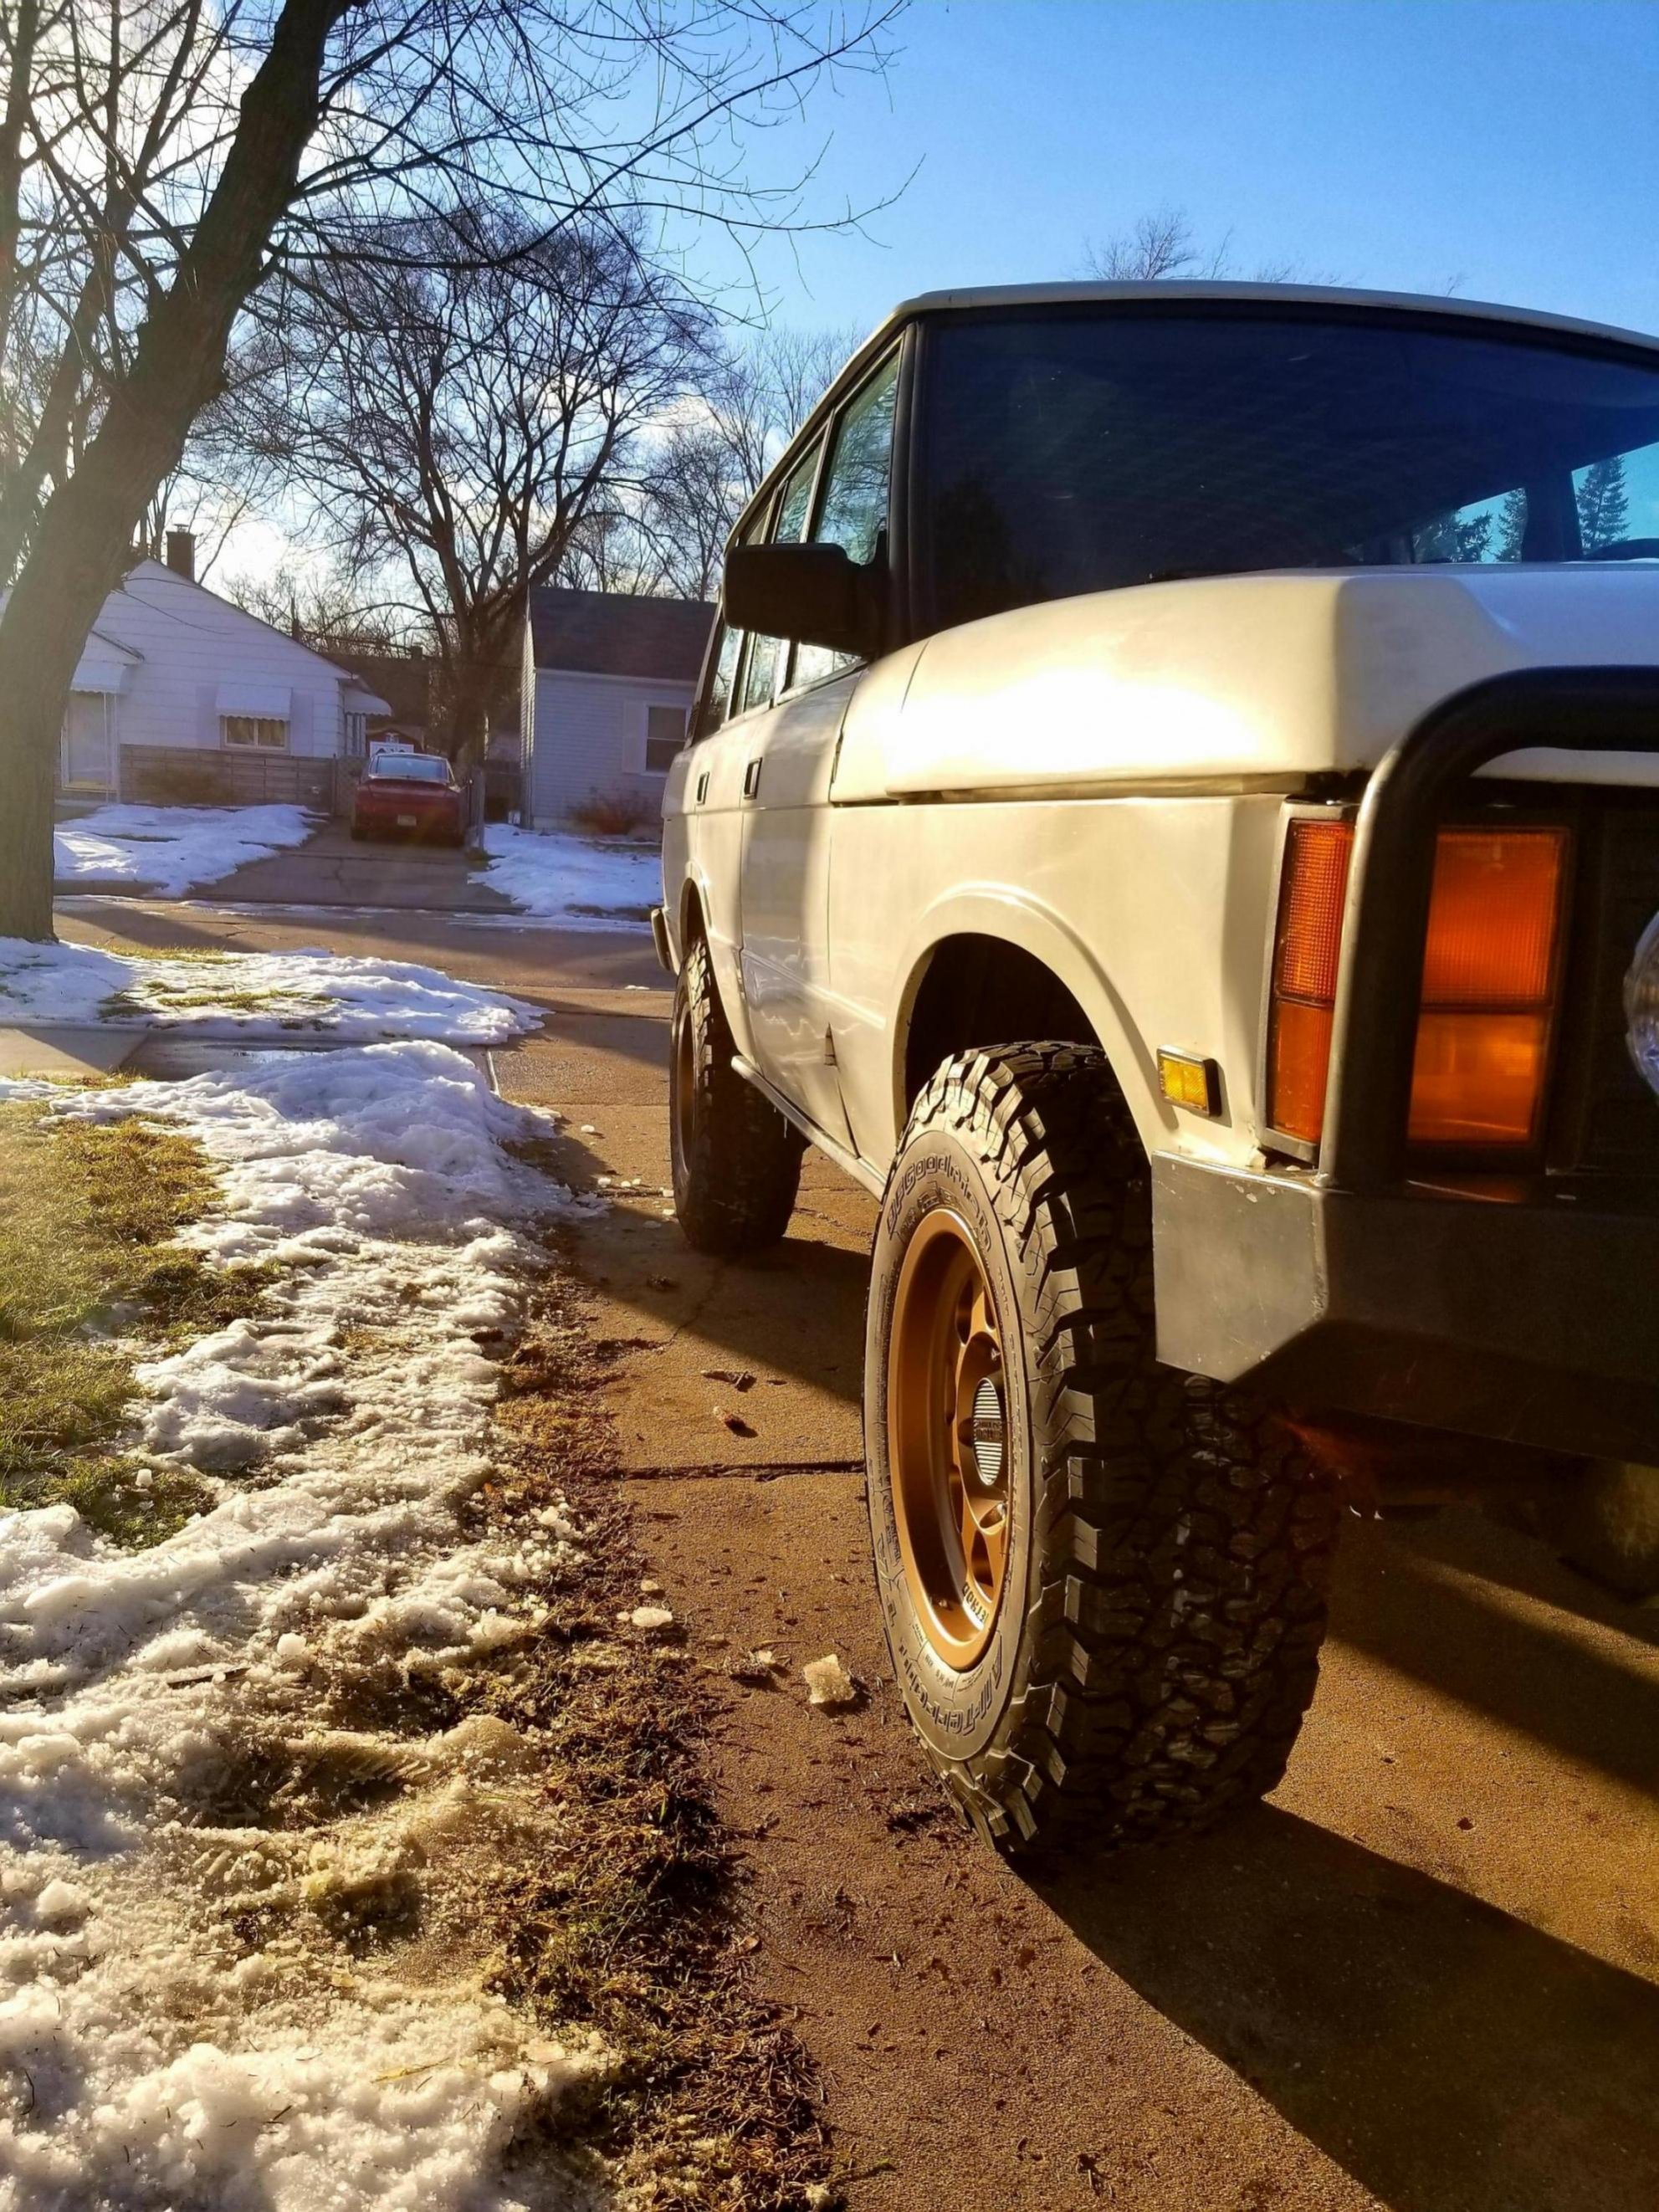 New member, first time Rover owner - 1987 RRC-20190215_171310_1550289455850.jpg